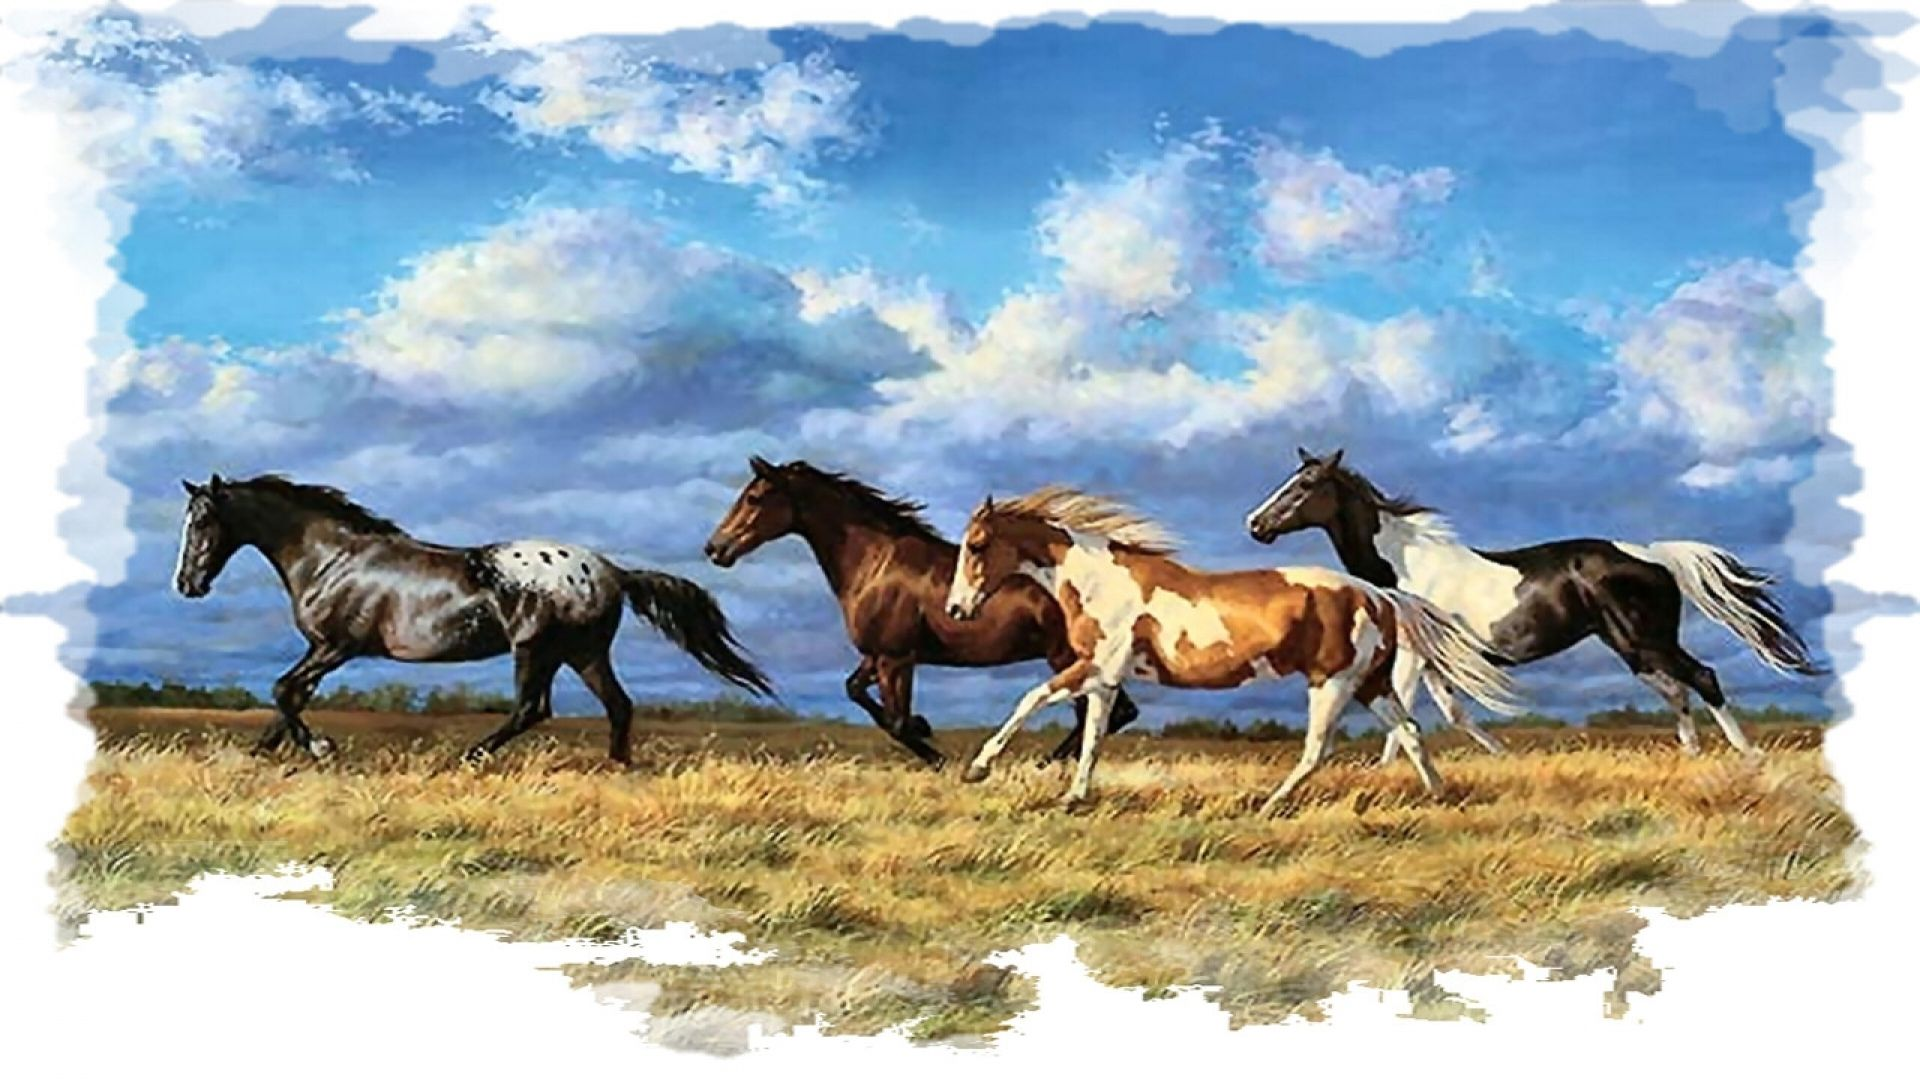 Horse Painting Wallpapers Pictures Images Wild Horses Running Horses Horse Wallpaper